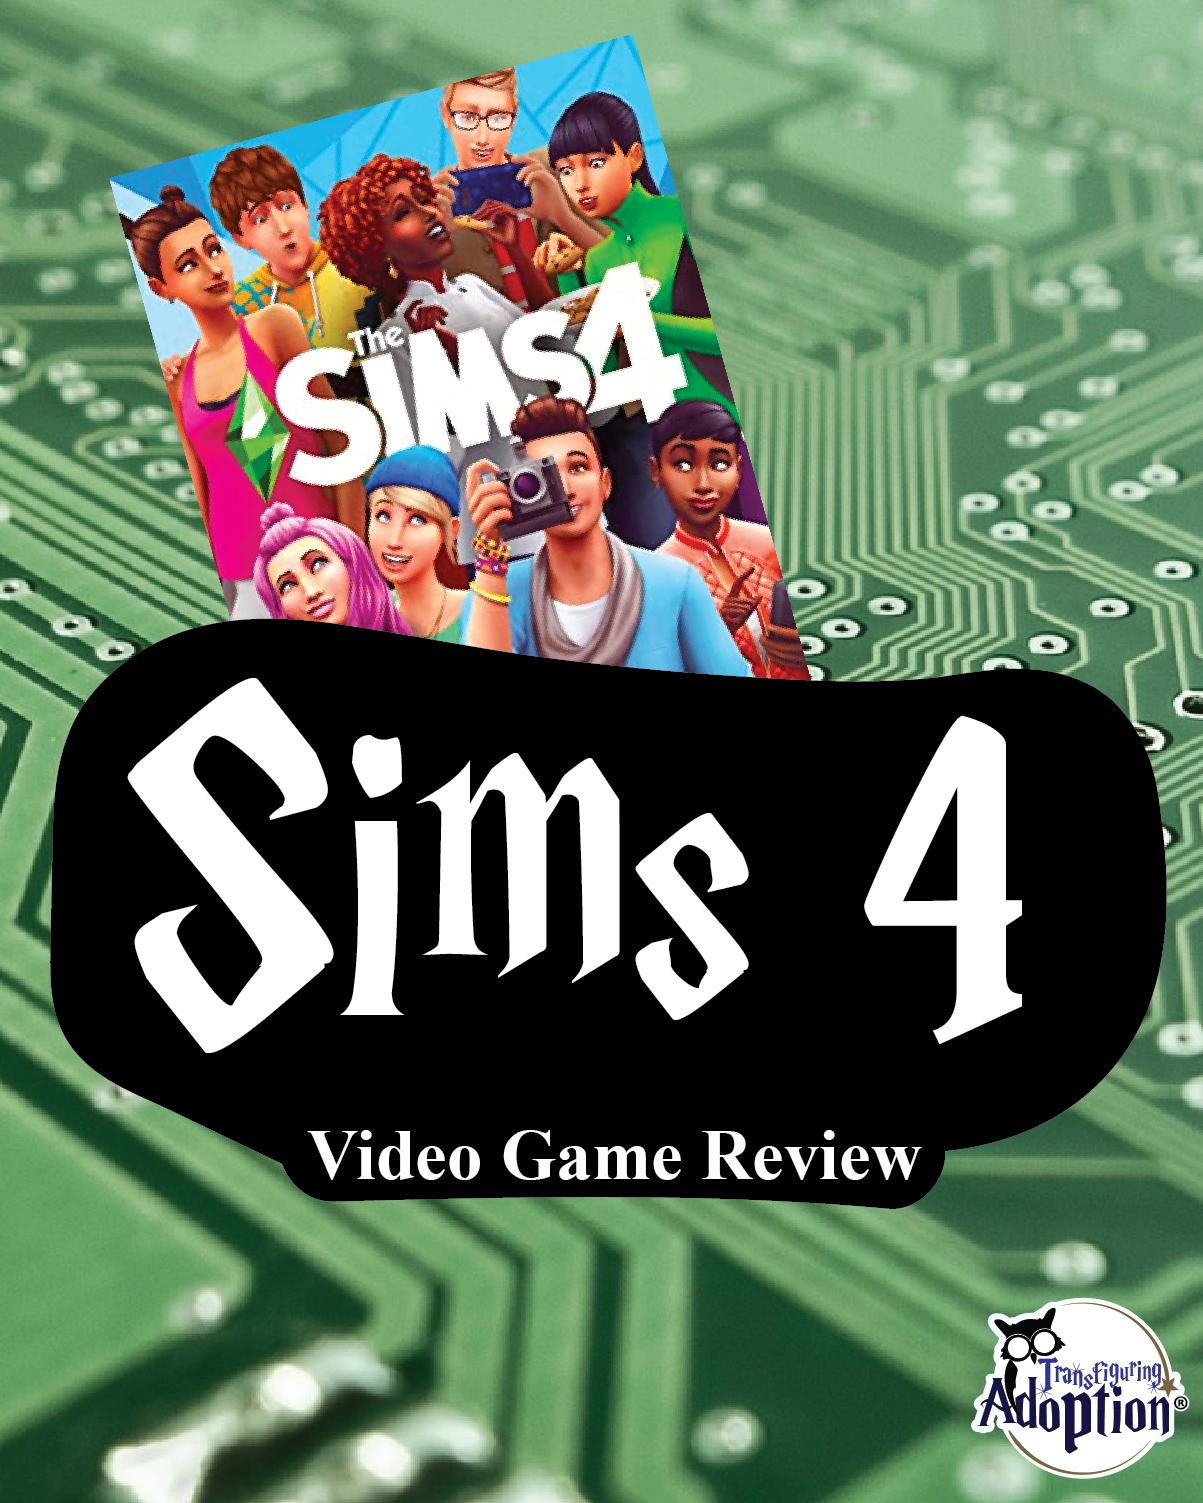 Sims 4 - Digital Review & Discussion Guide